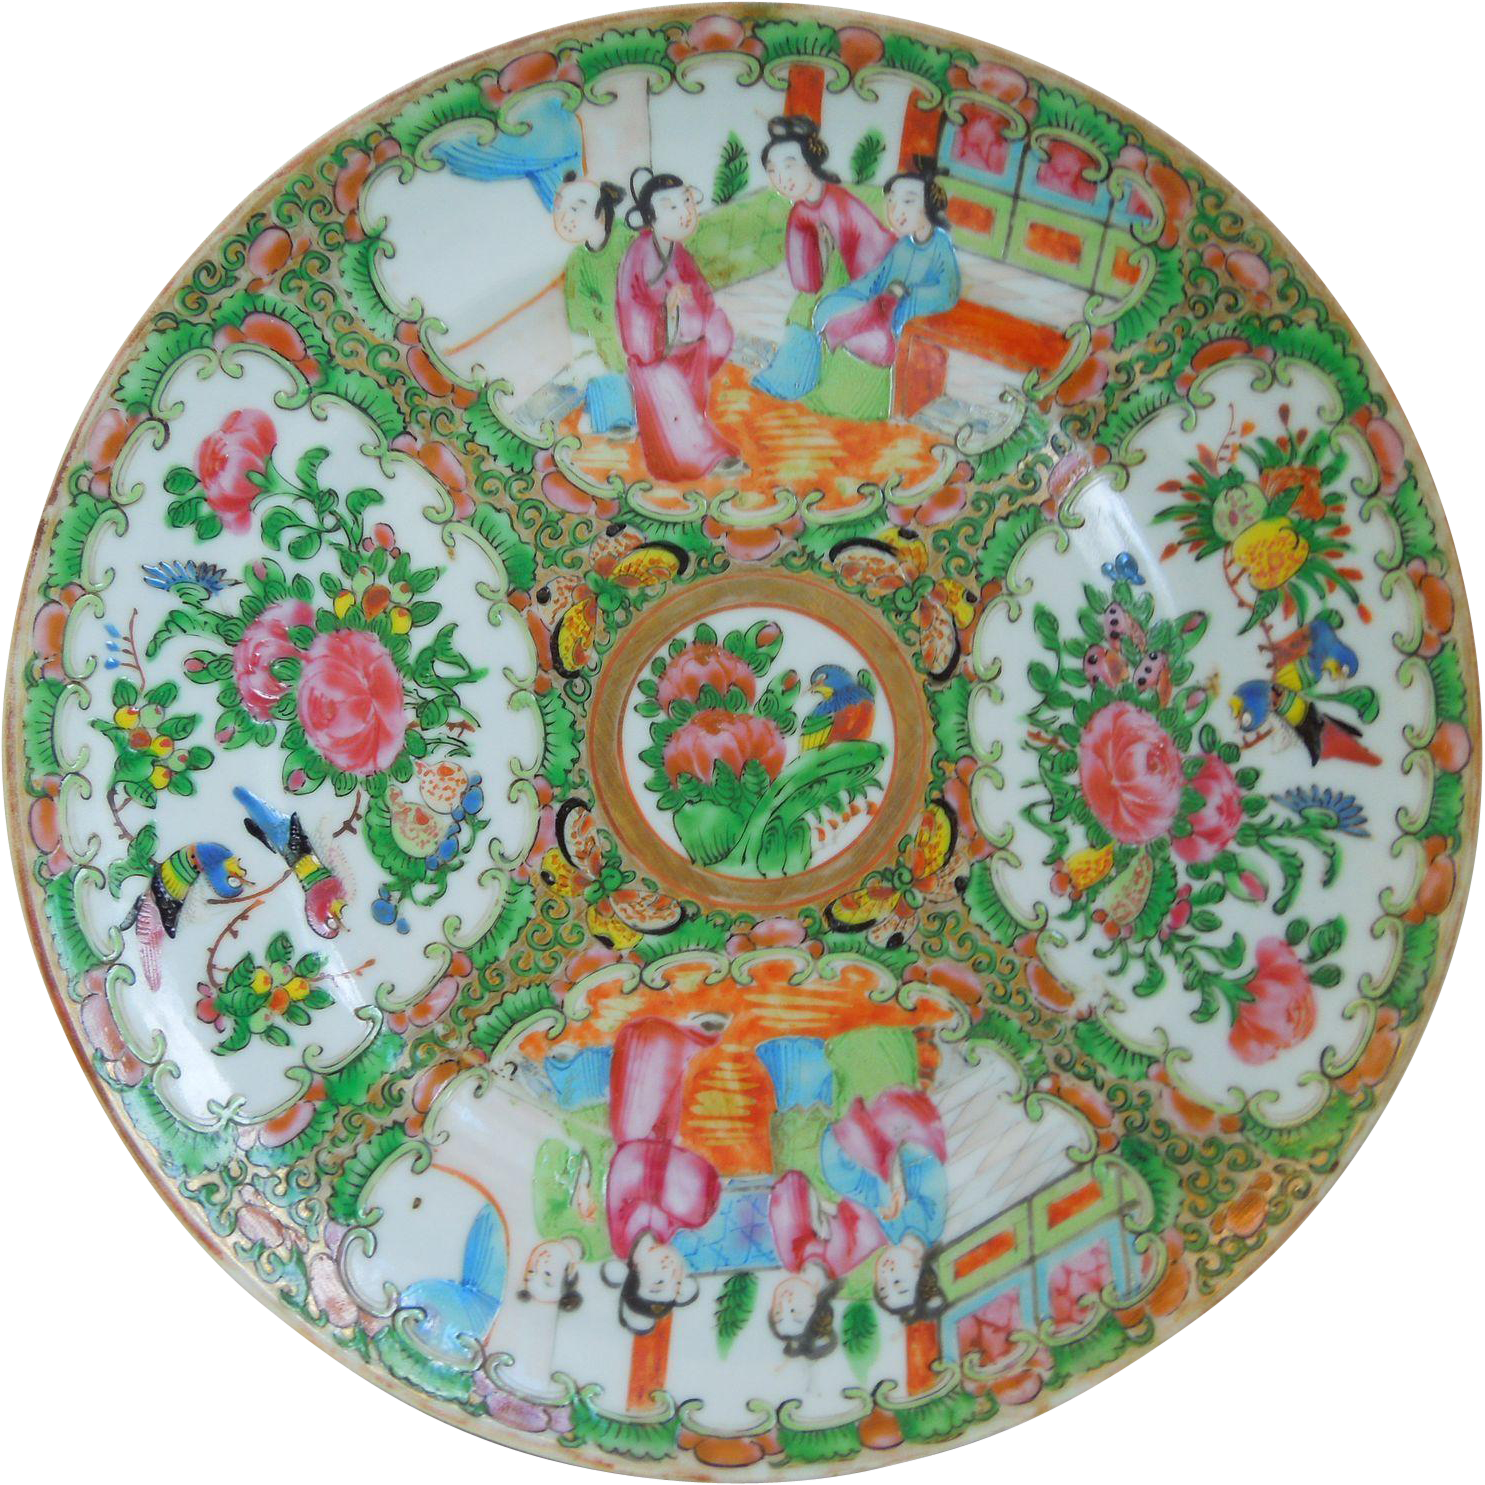 Antique 19th Century Chinese Rose Medallion Porcelain Plate